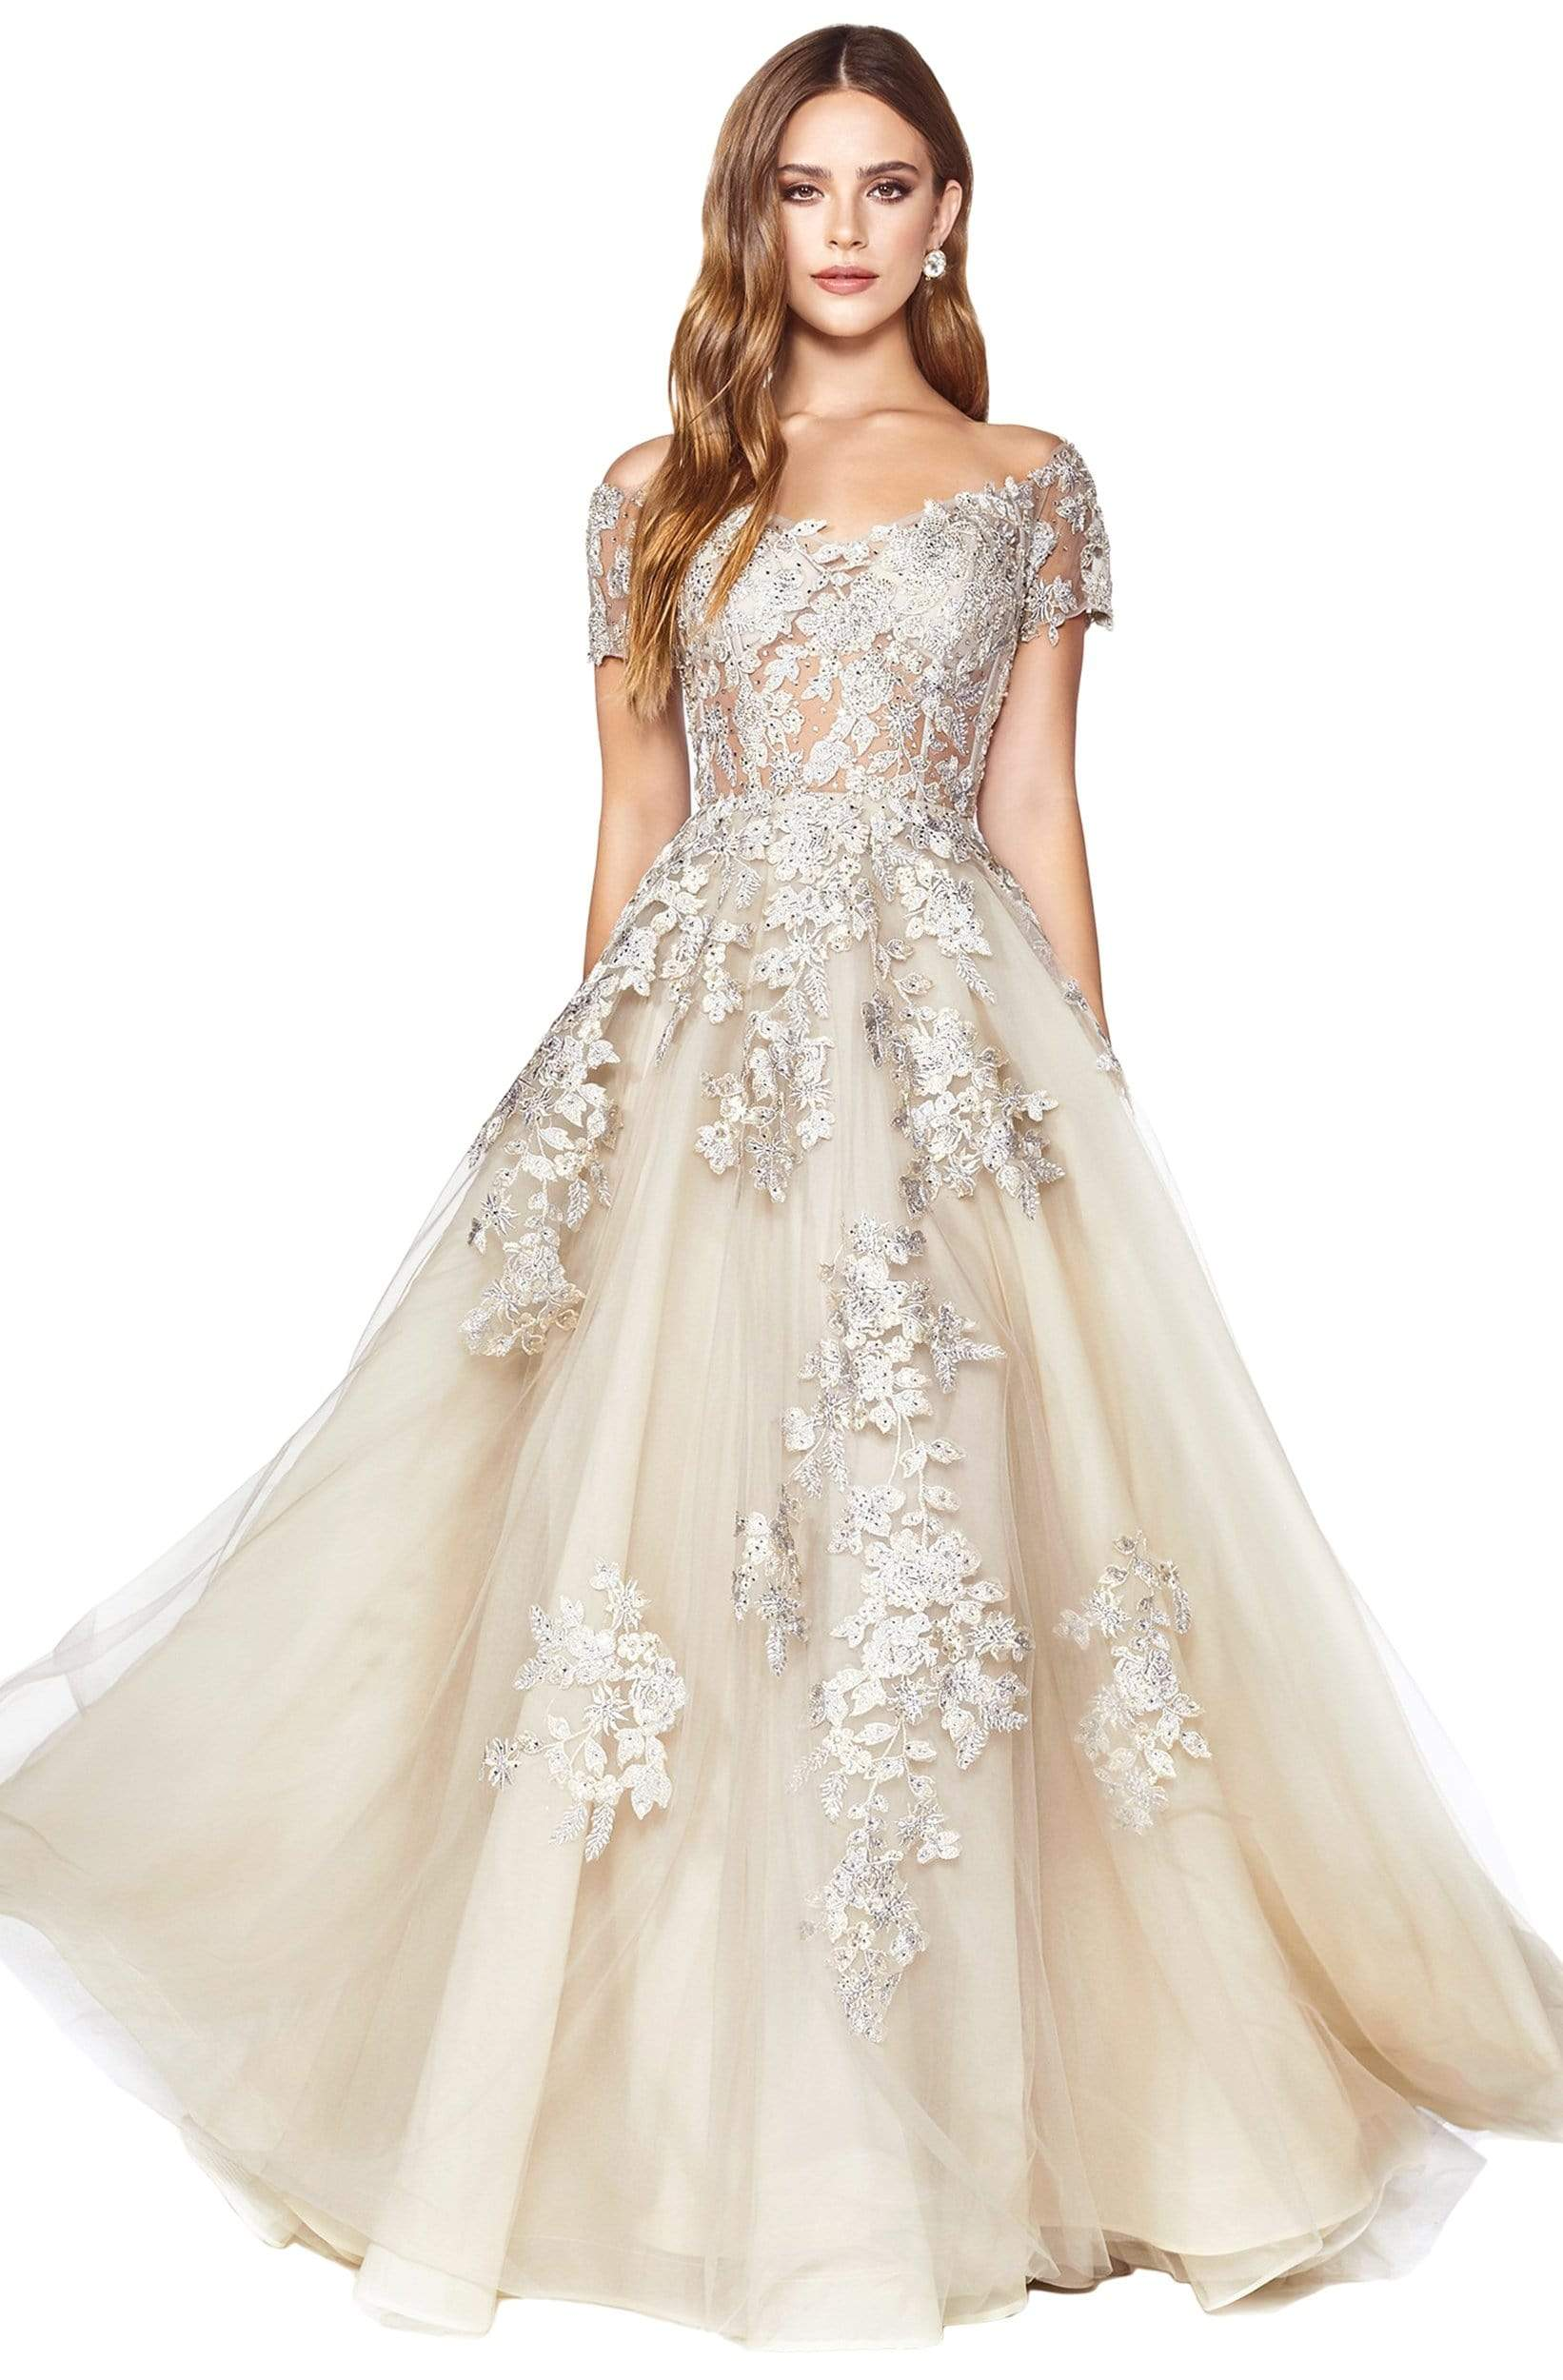 Cinderella Divine - C20 Jeweled Applique Illusion A-Line Gown Prom Dresses 2 / Champagne